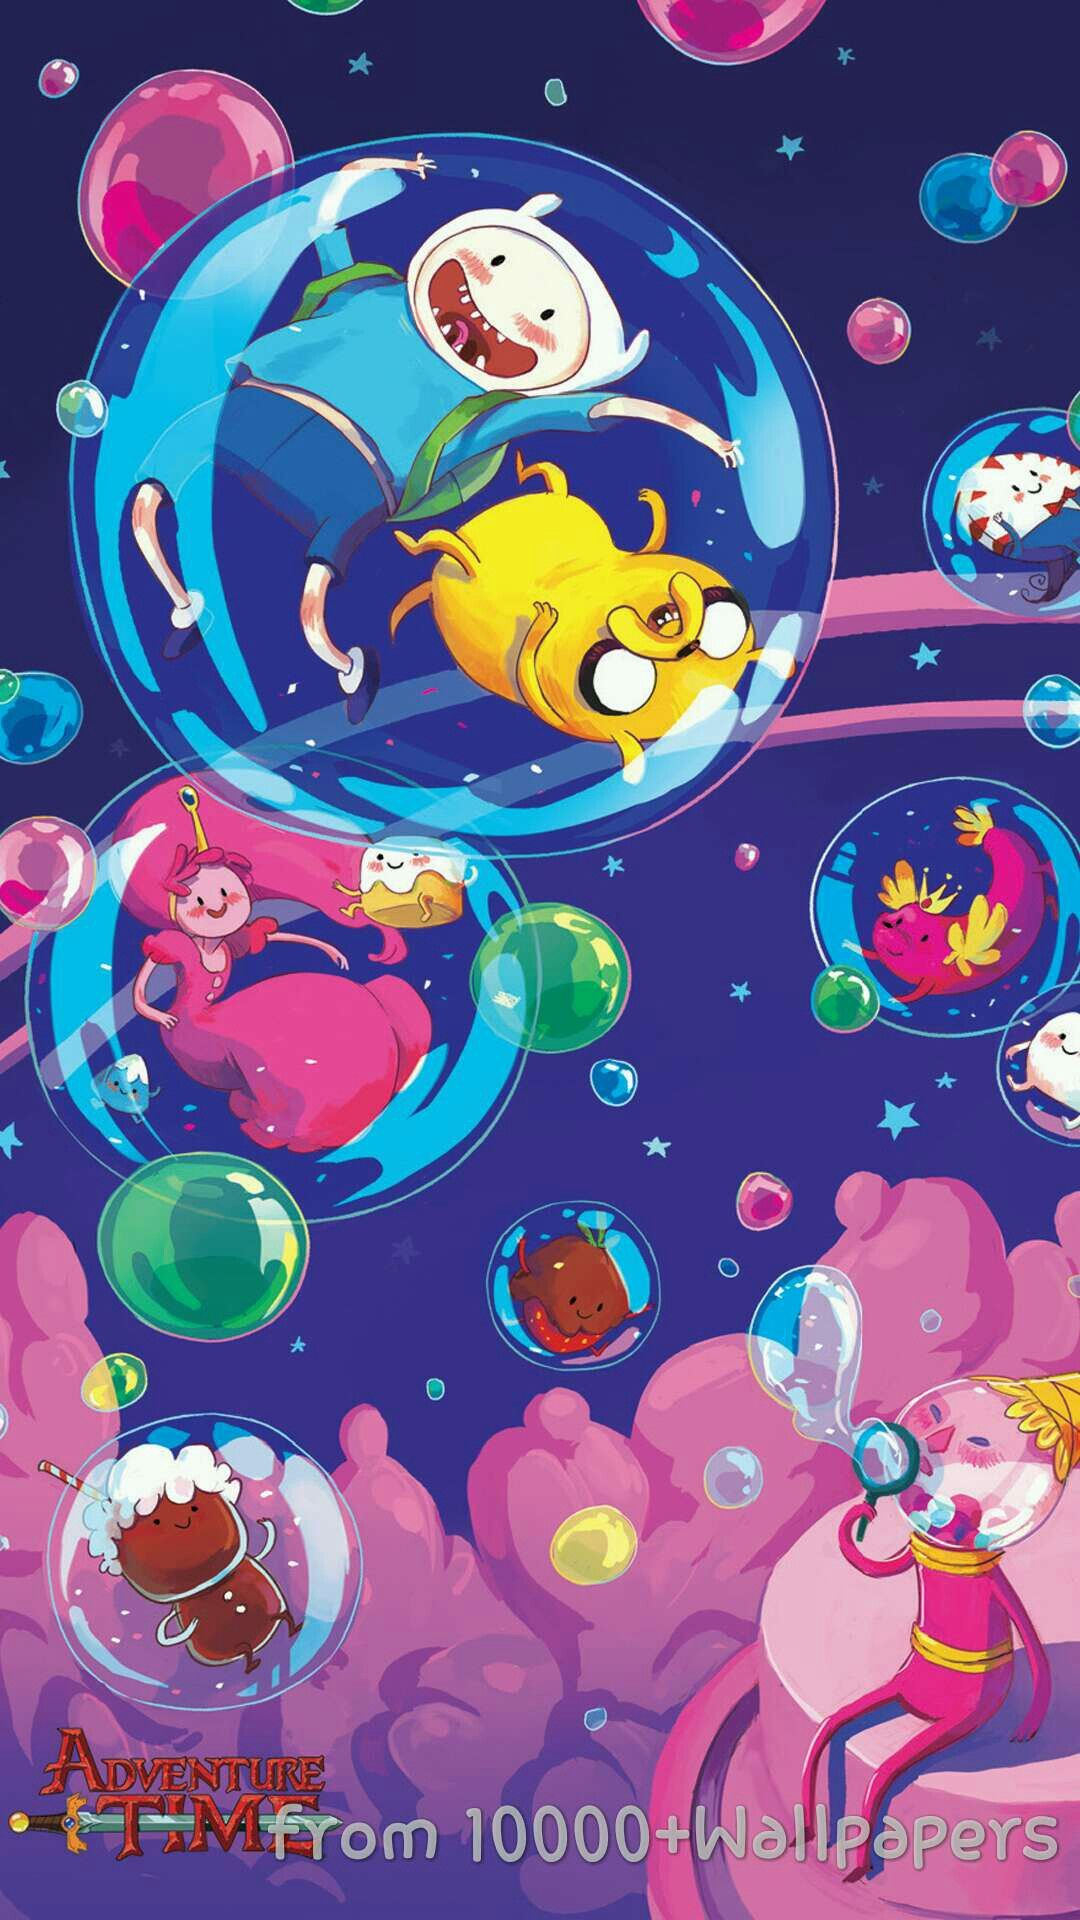 Pin By Brittani On Cartoons Adventure Time Anime Adventure Time Wallpaper Adventure Time